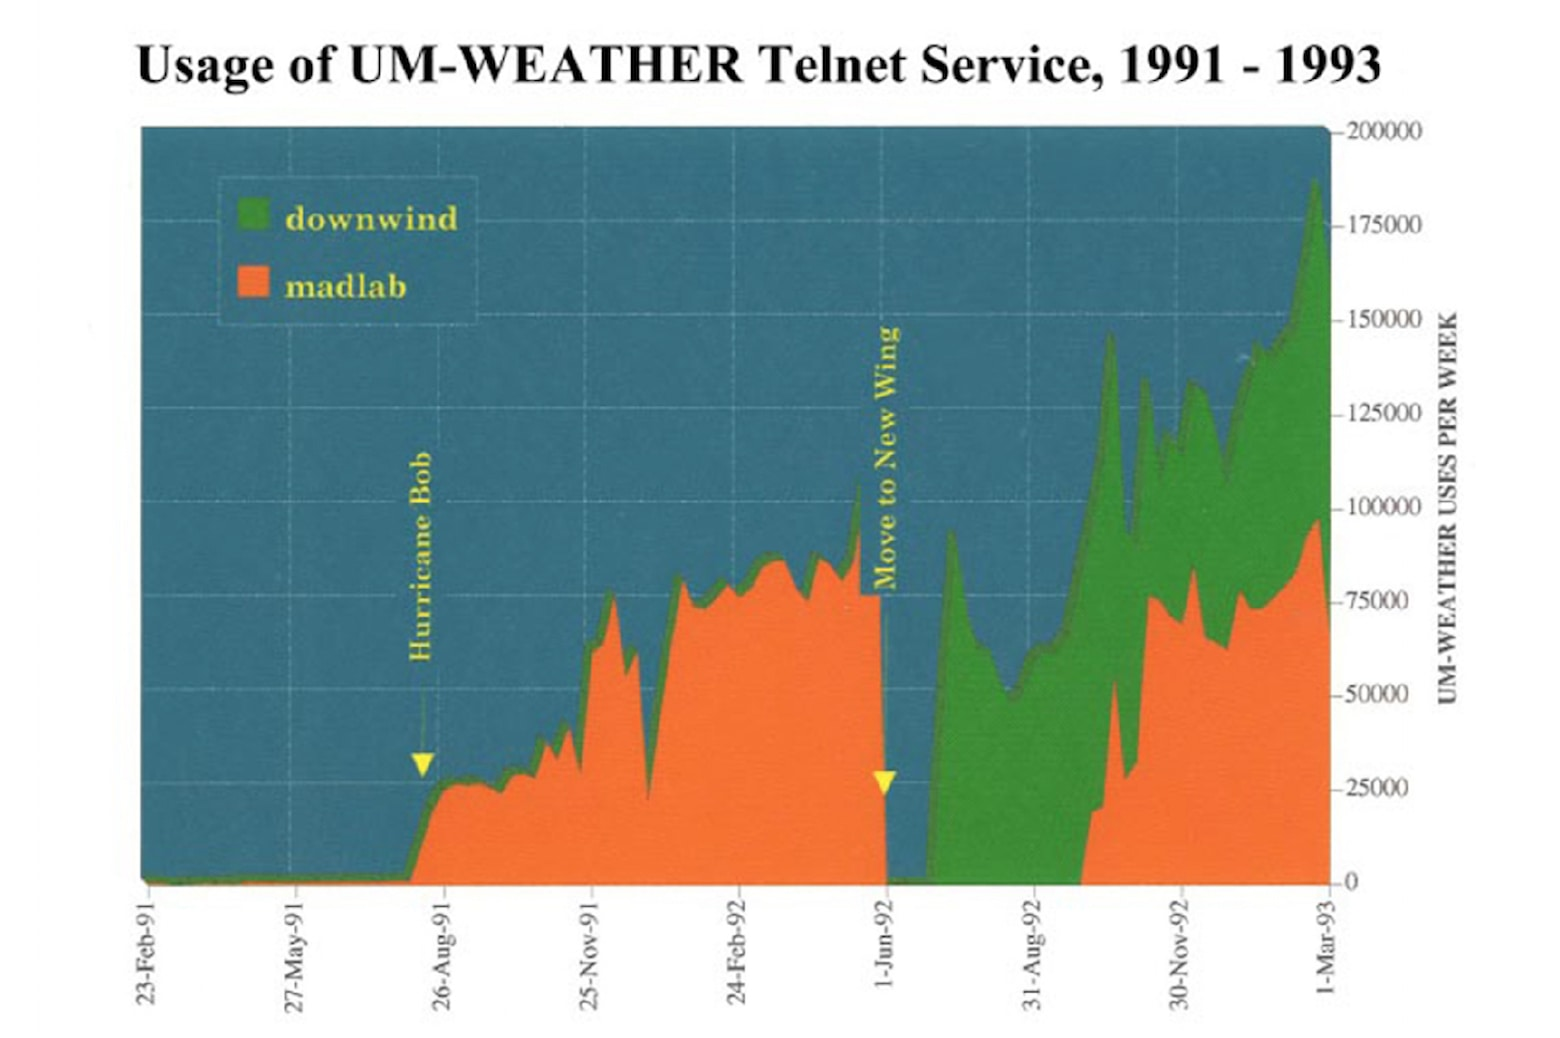 Graph of the usage of the UM-Weather Telnet Service from 1991-1993